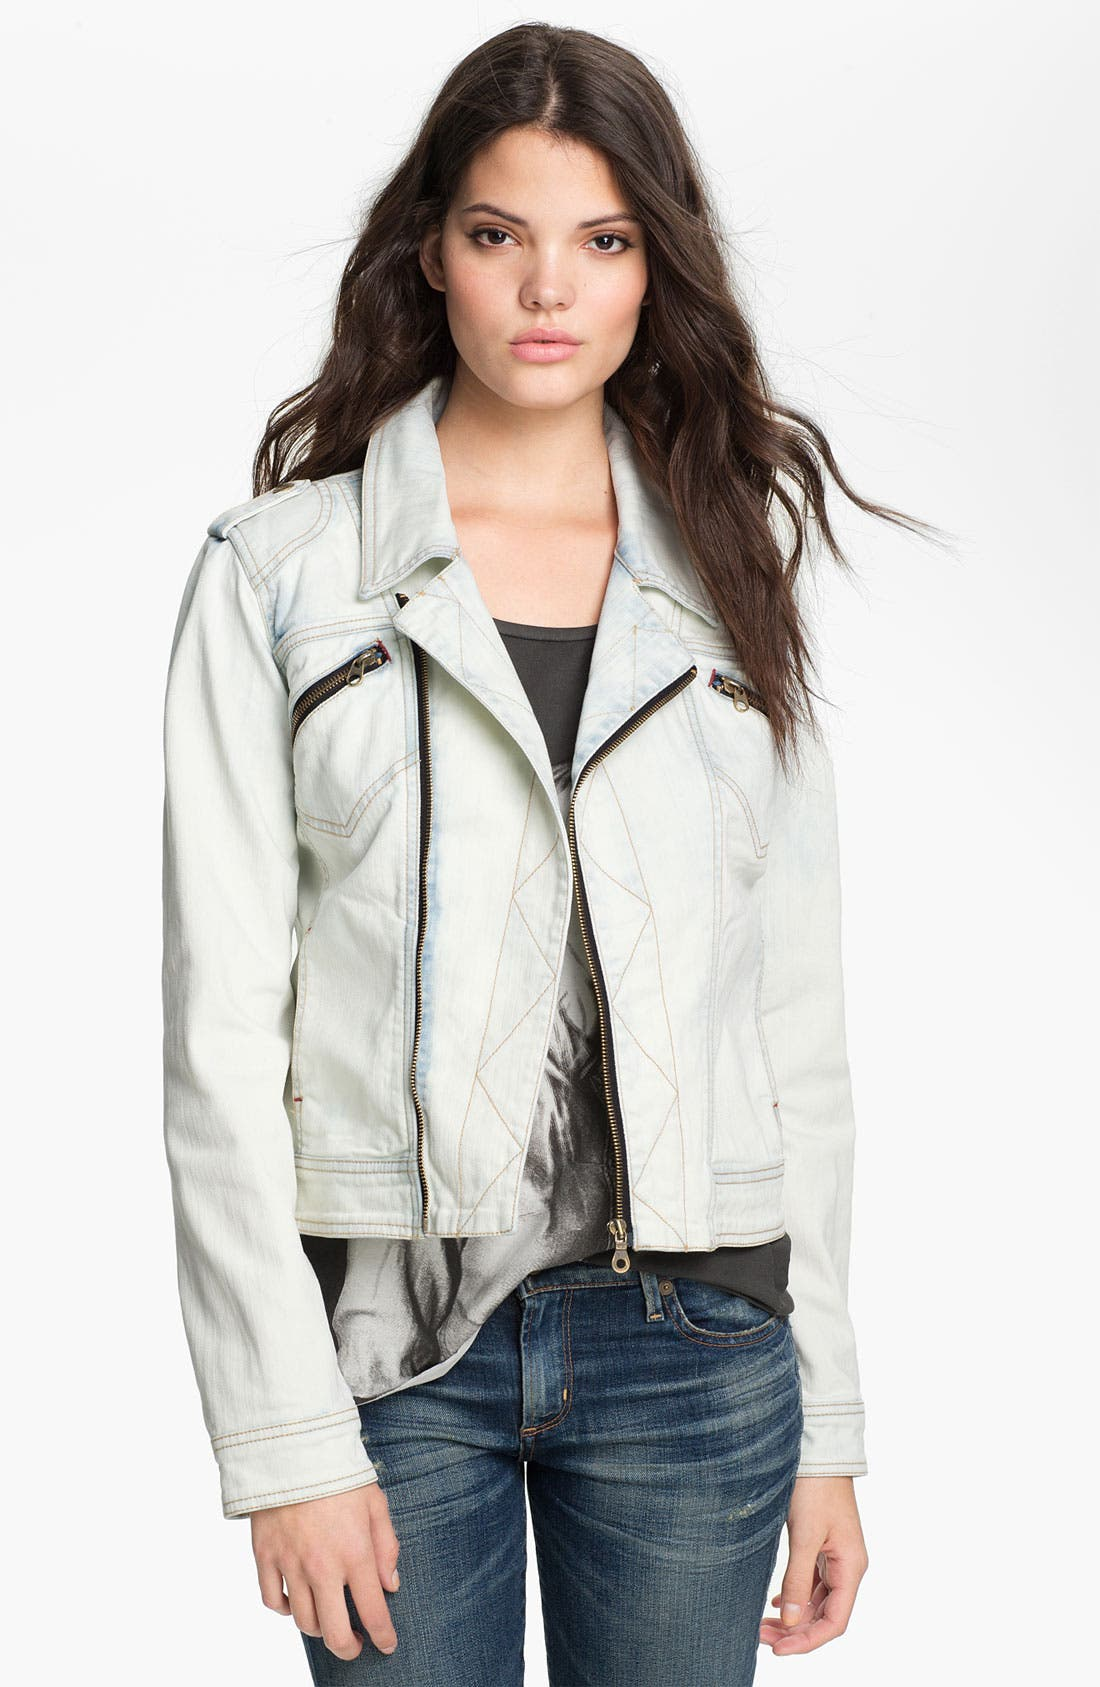 Alternate Image 1 Selected - Sanctuary 'Desert Rider' Denim Biker Jacket